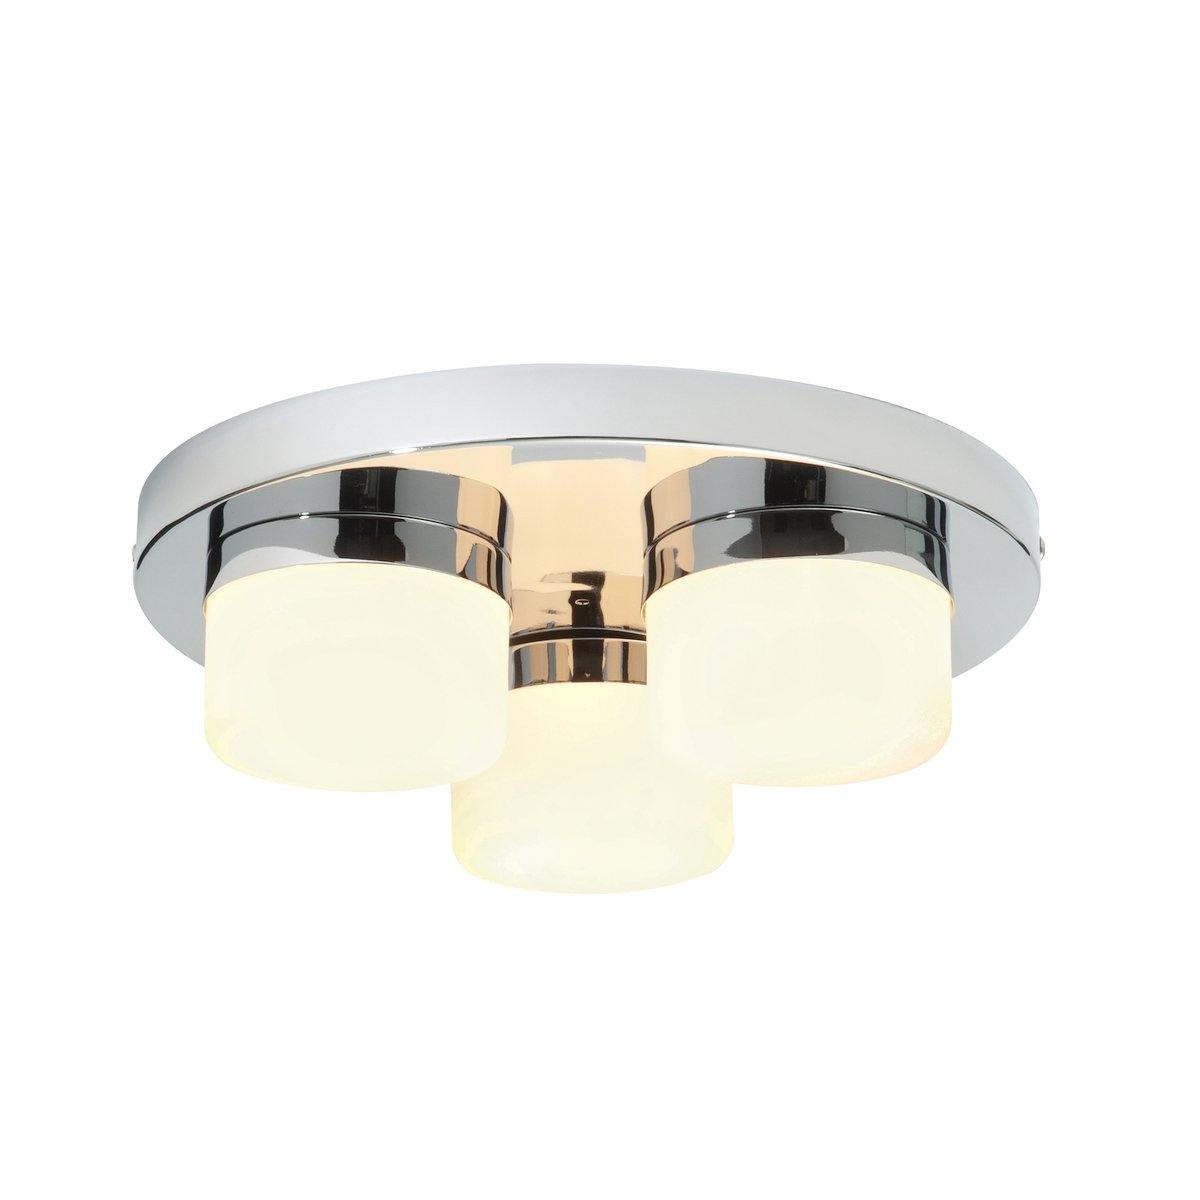 Decorative 3 Light G9 Bathroom Ceiling Light in a Chrome Finish with White Frosted Glass Shades Zone 2 Rated IP44 [Energy Class D] National Lighting